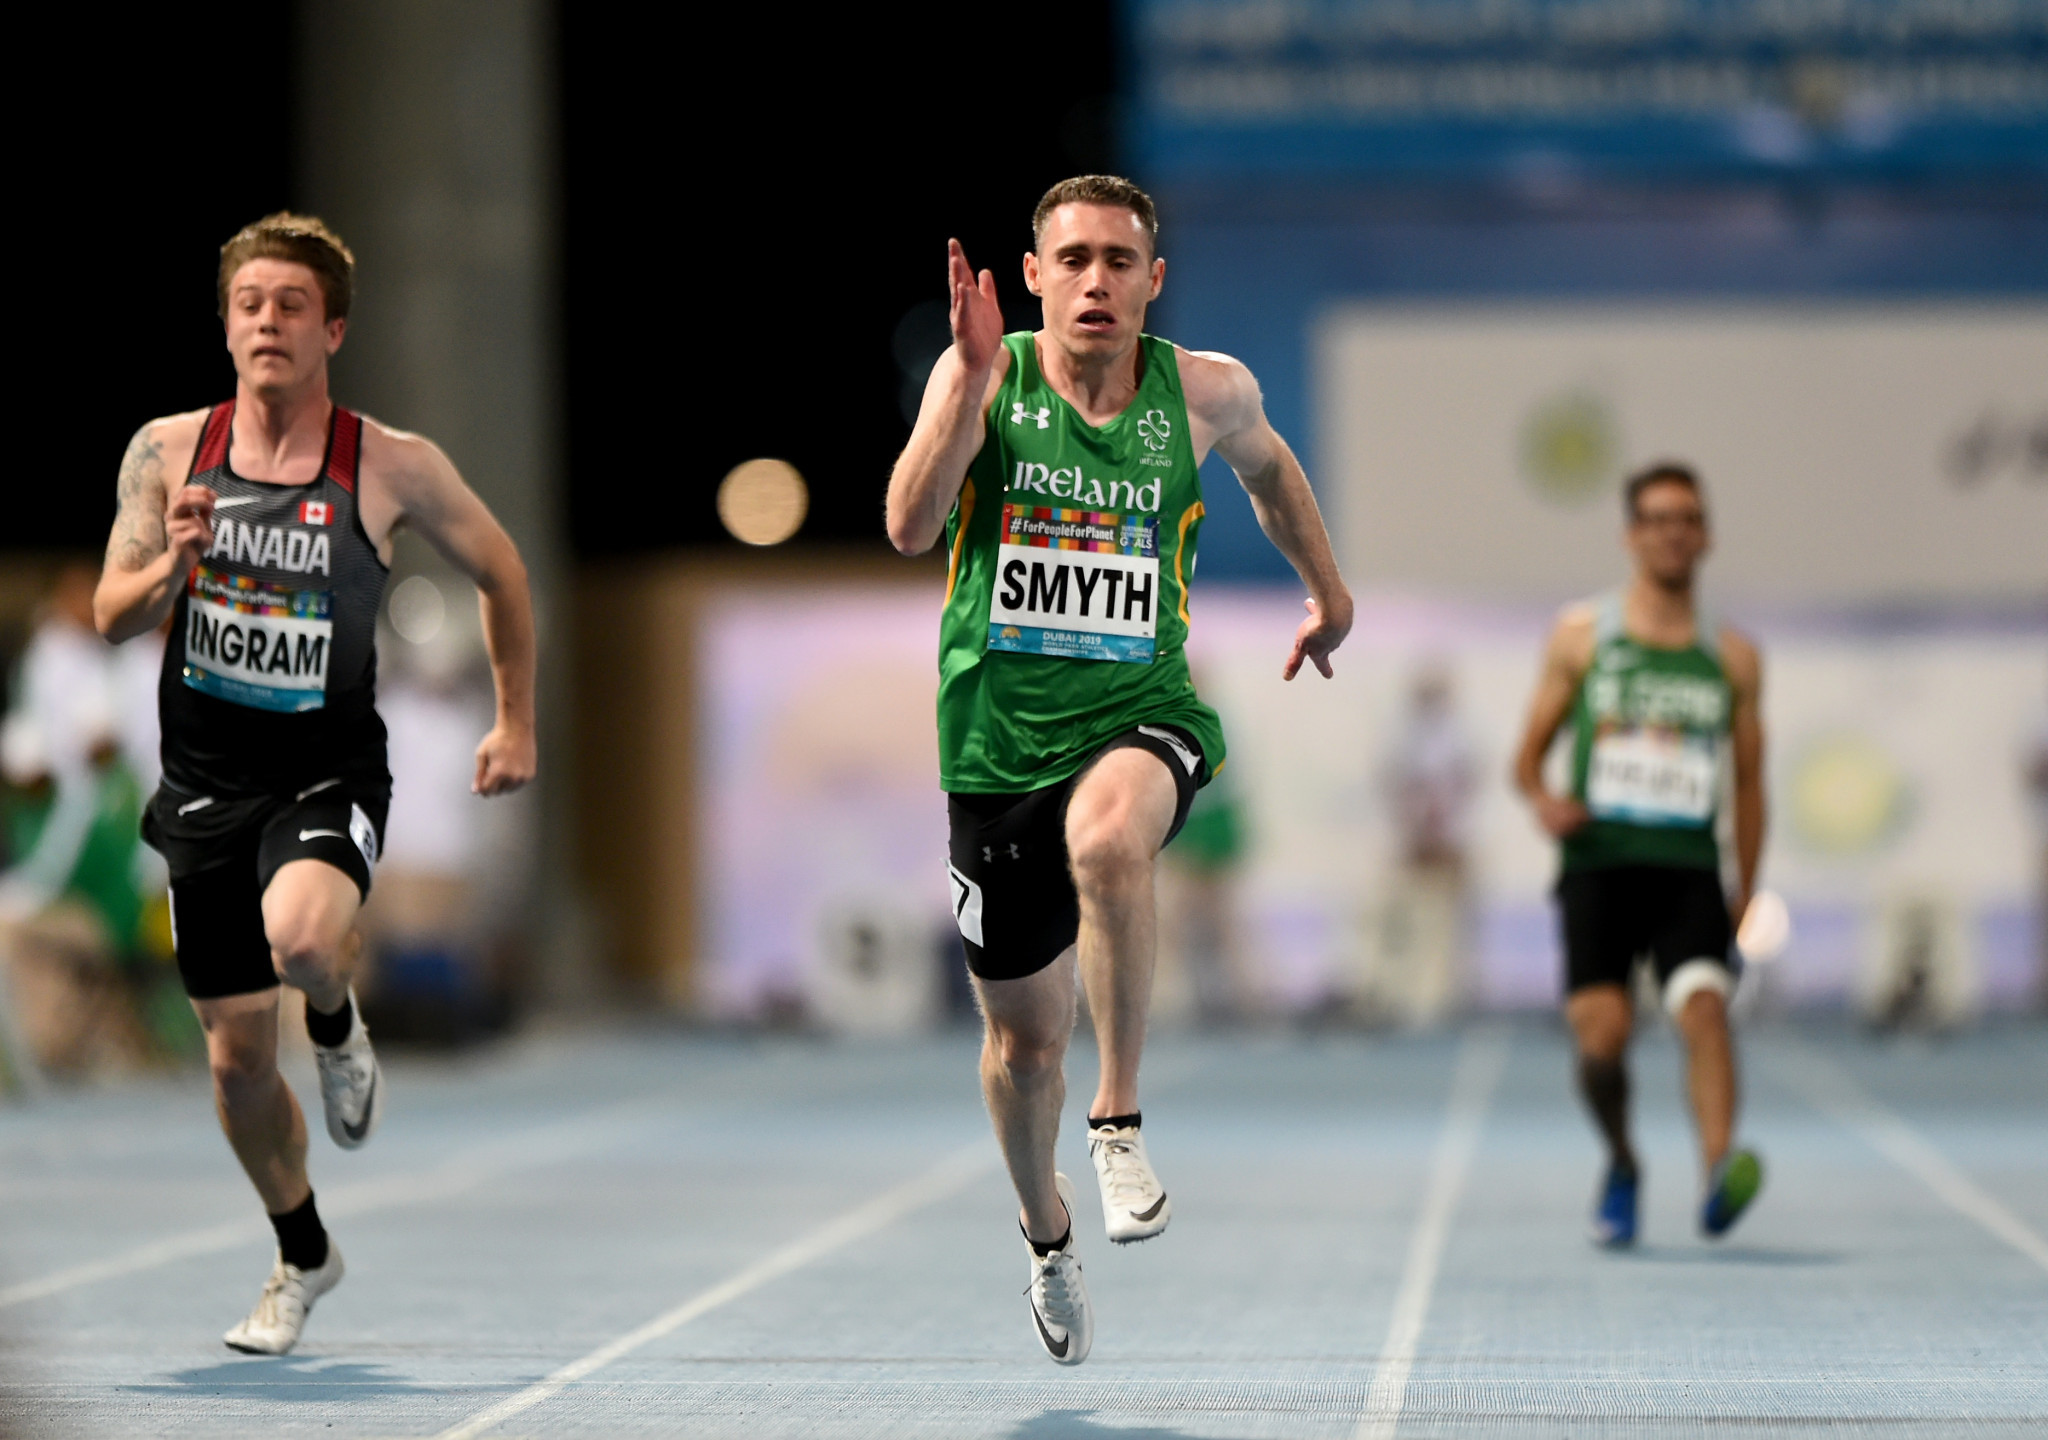 Irish sprint star Smyth admits to training challenges during lockdown